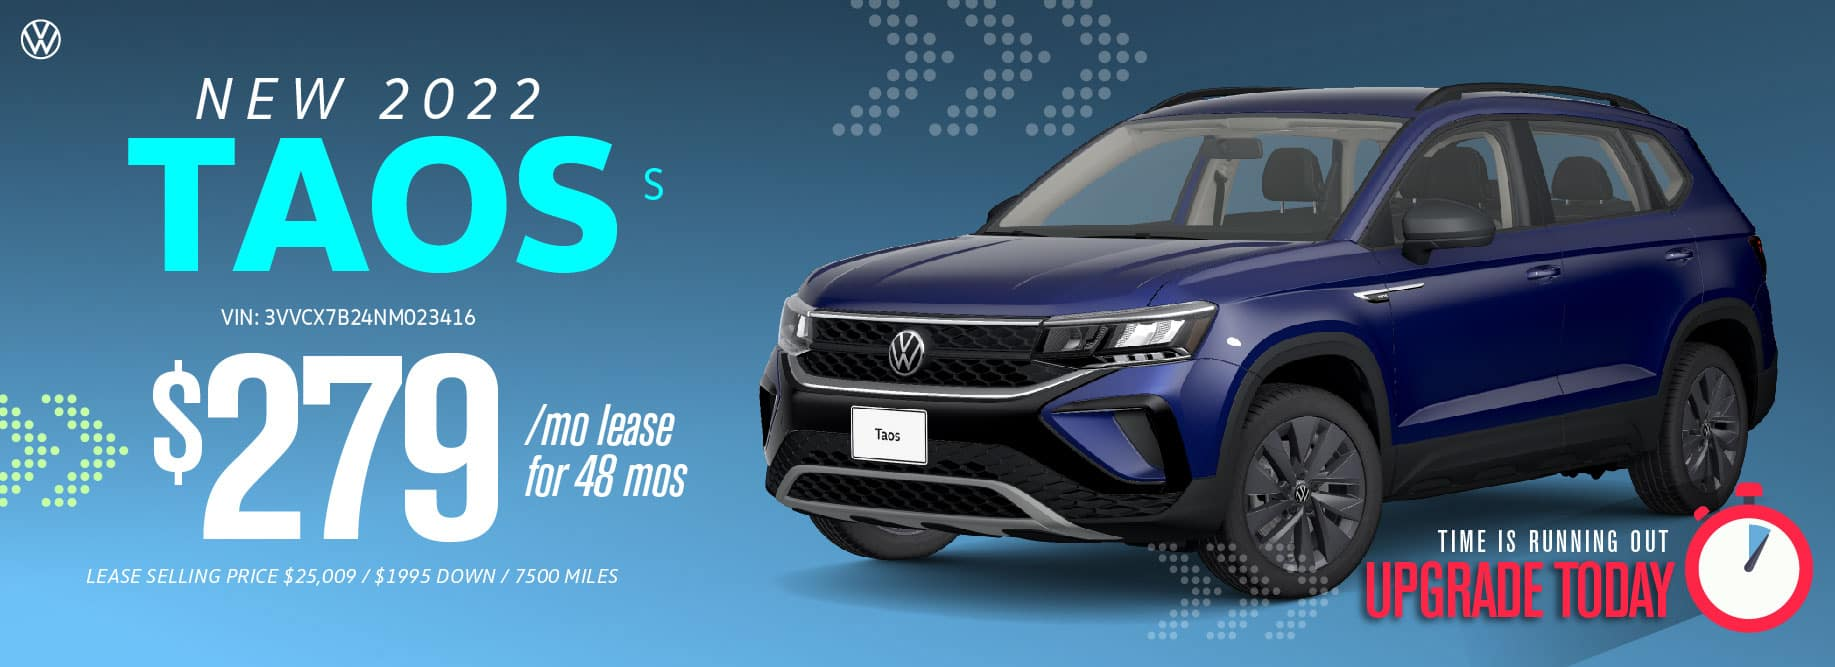 Lease the 2022 Taos from $279 a month at Volkswagen Clear Lake